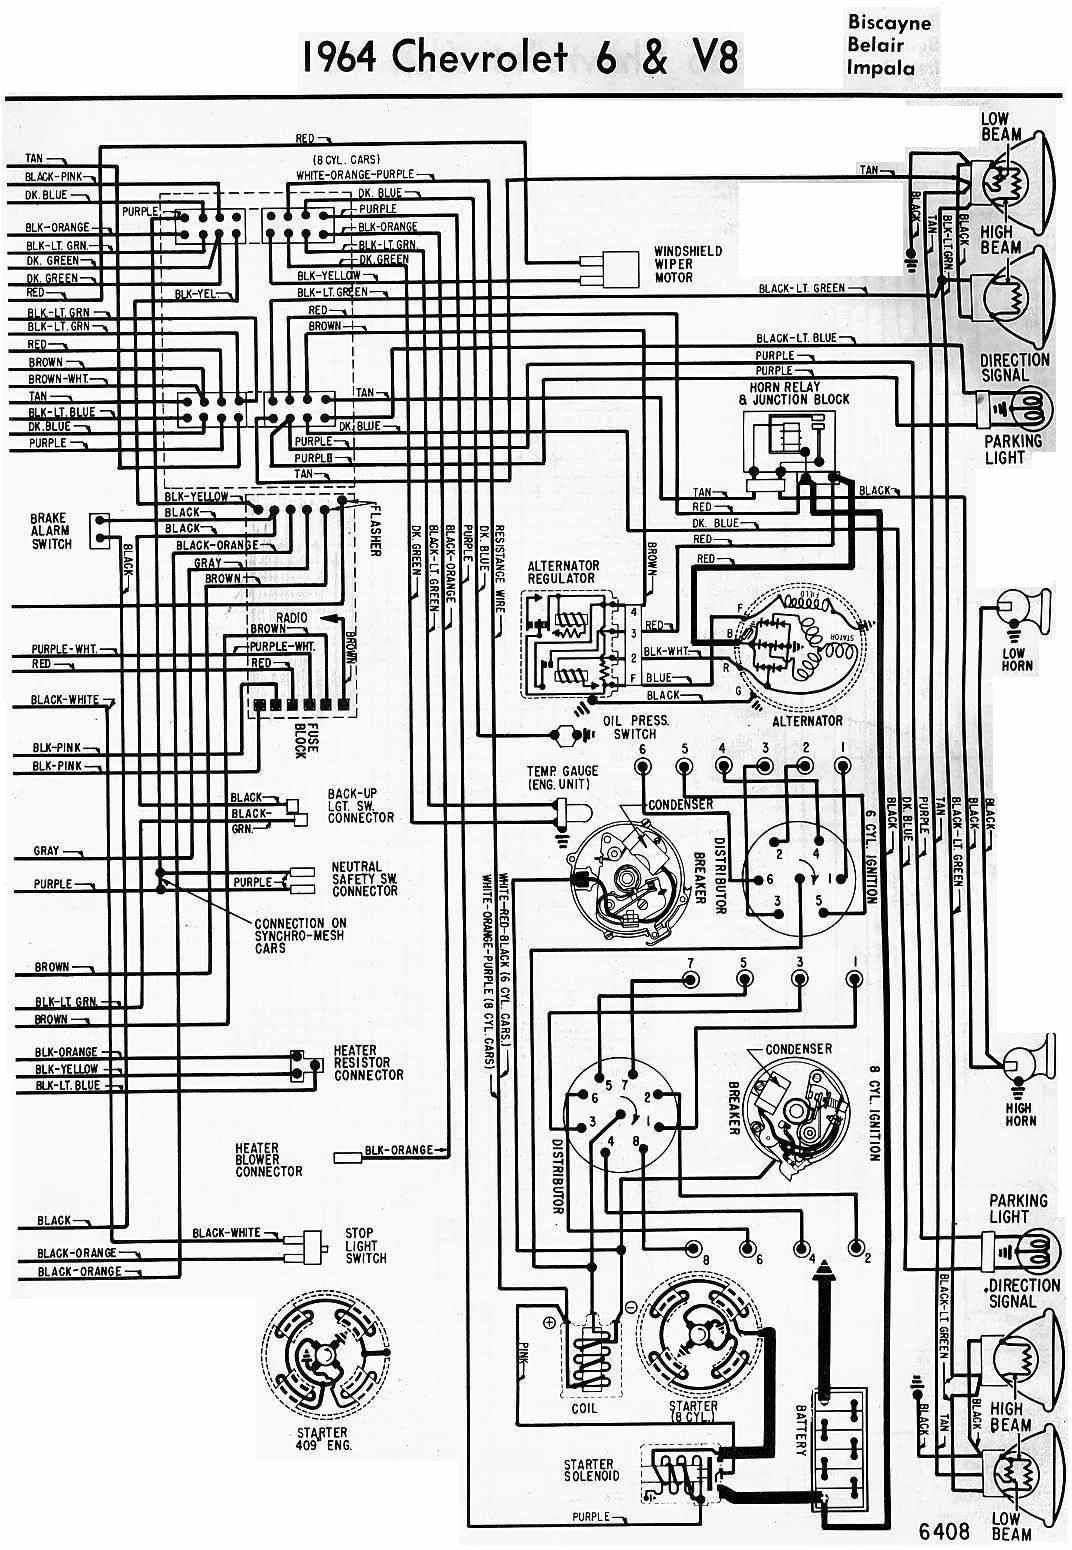 1964 chevrolet wiring diagram wiring diagram 64 impala wiring diagram wiring diagram reviewgm fuse box diagram [ 1072 x 1550 Pixel ]